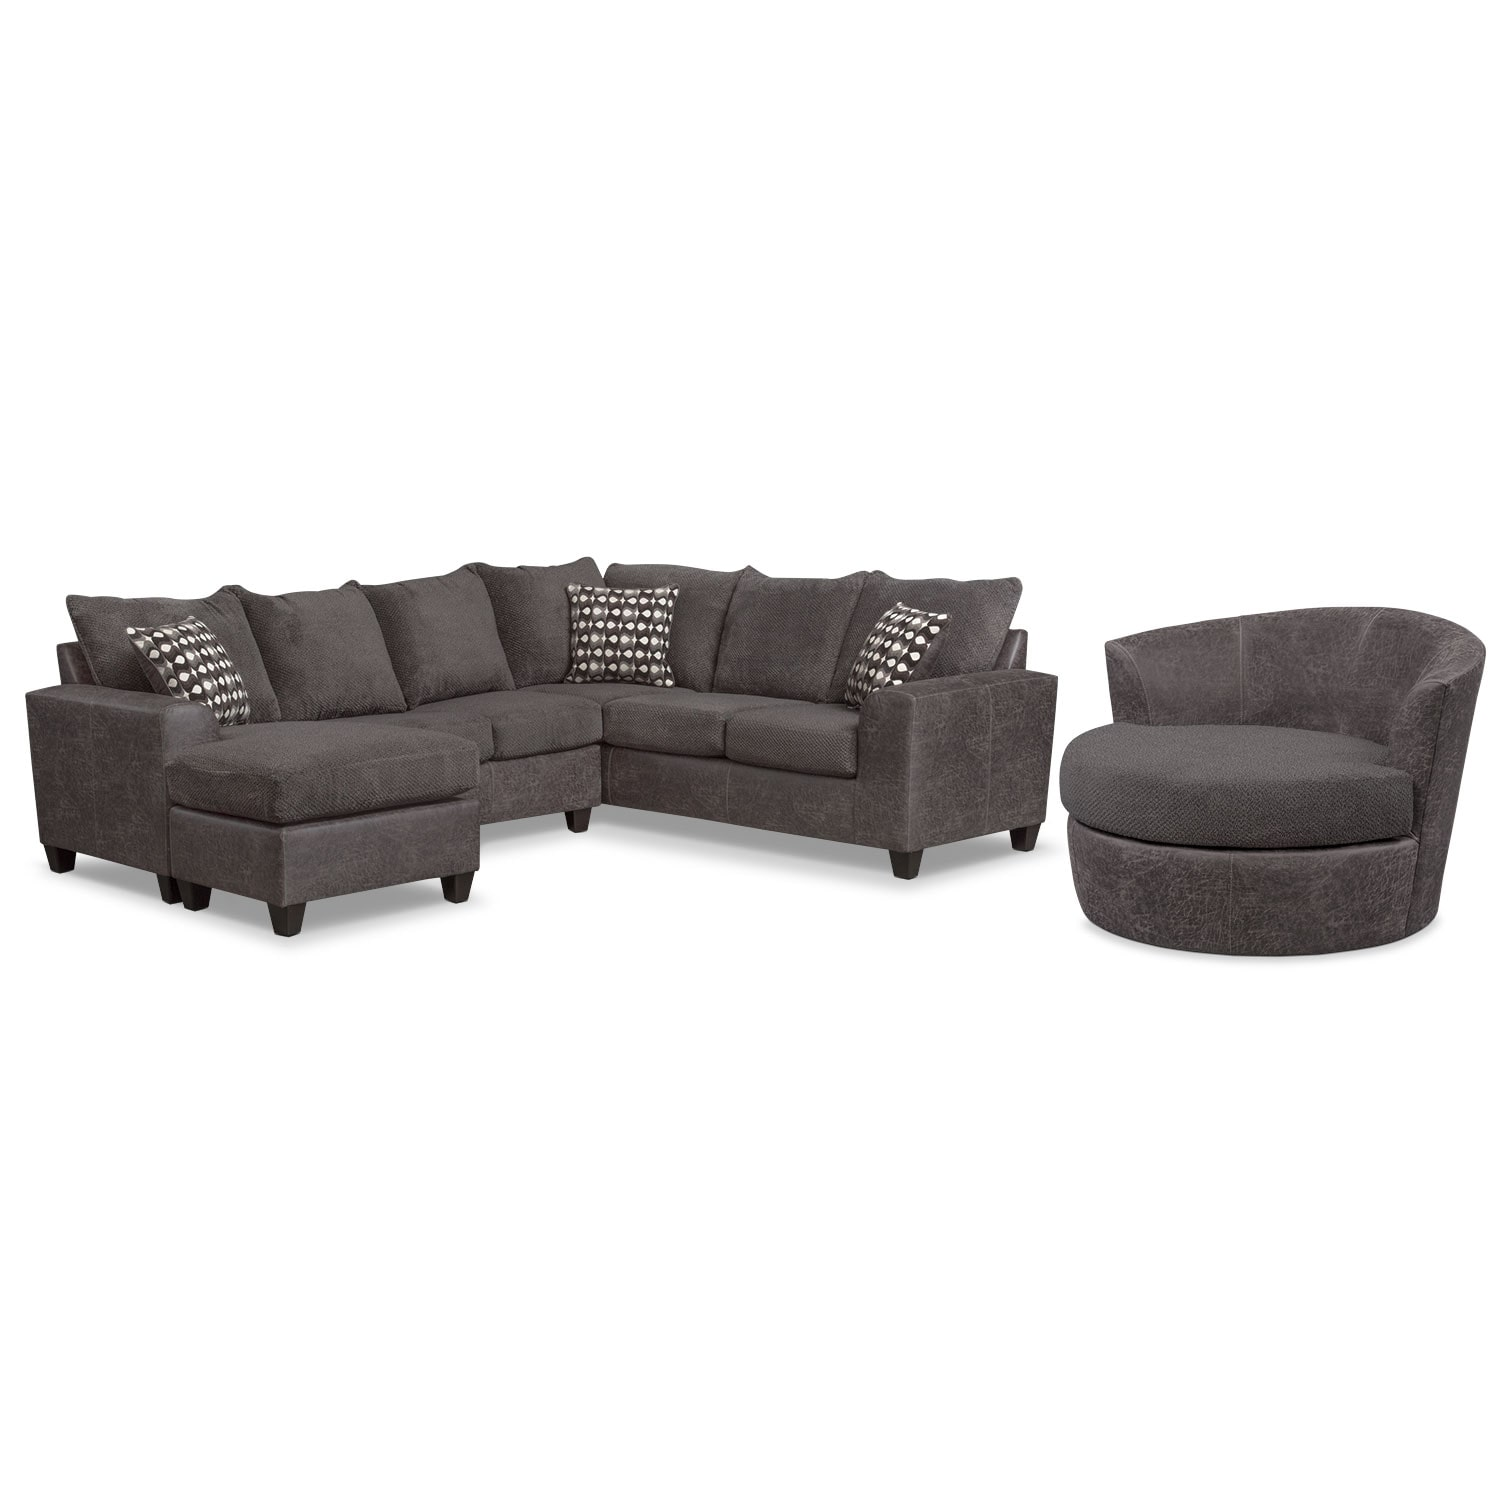 Brando 3 Piece Sectional W Chaise And Swivel Chair Set